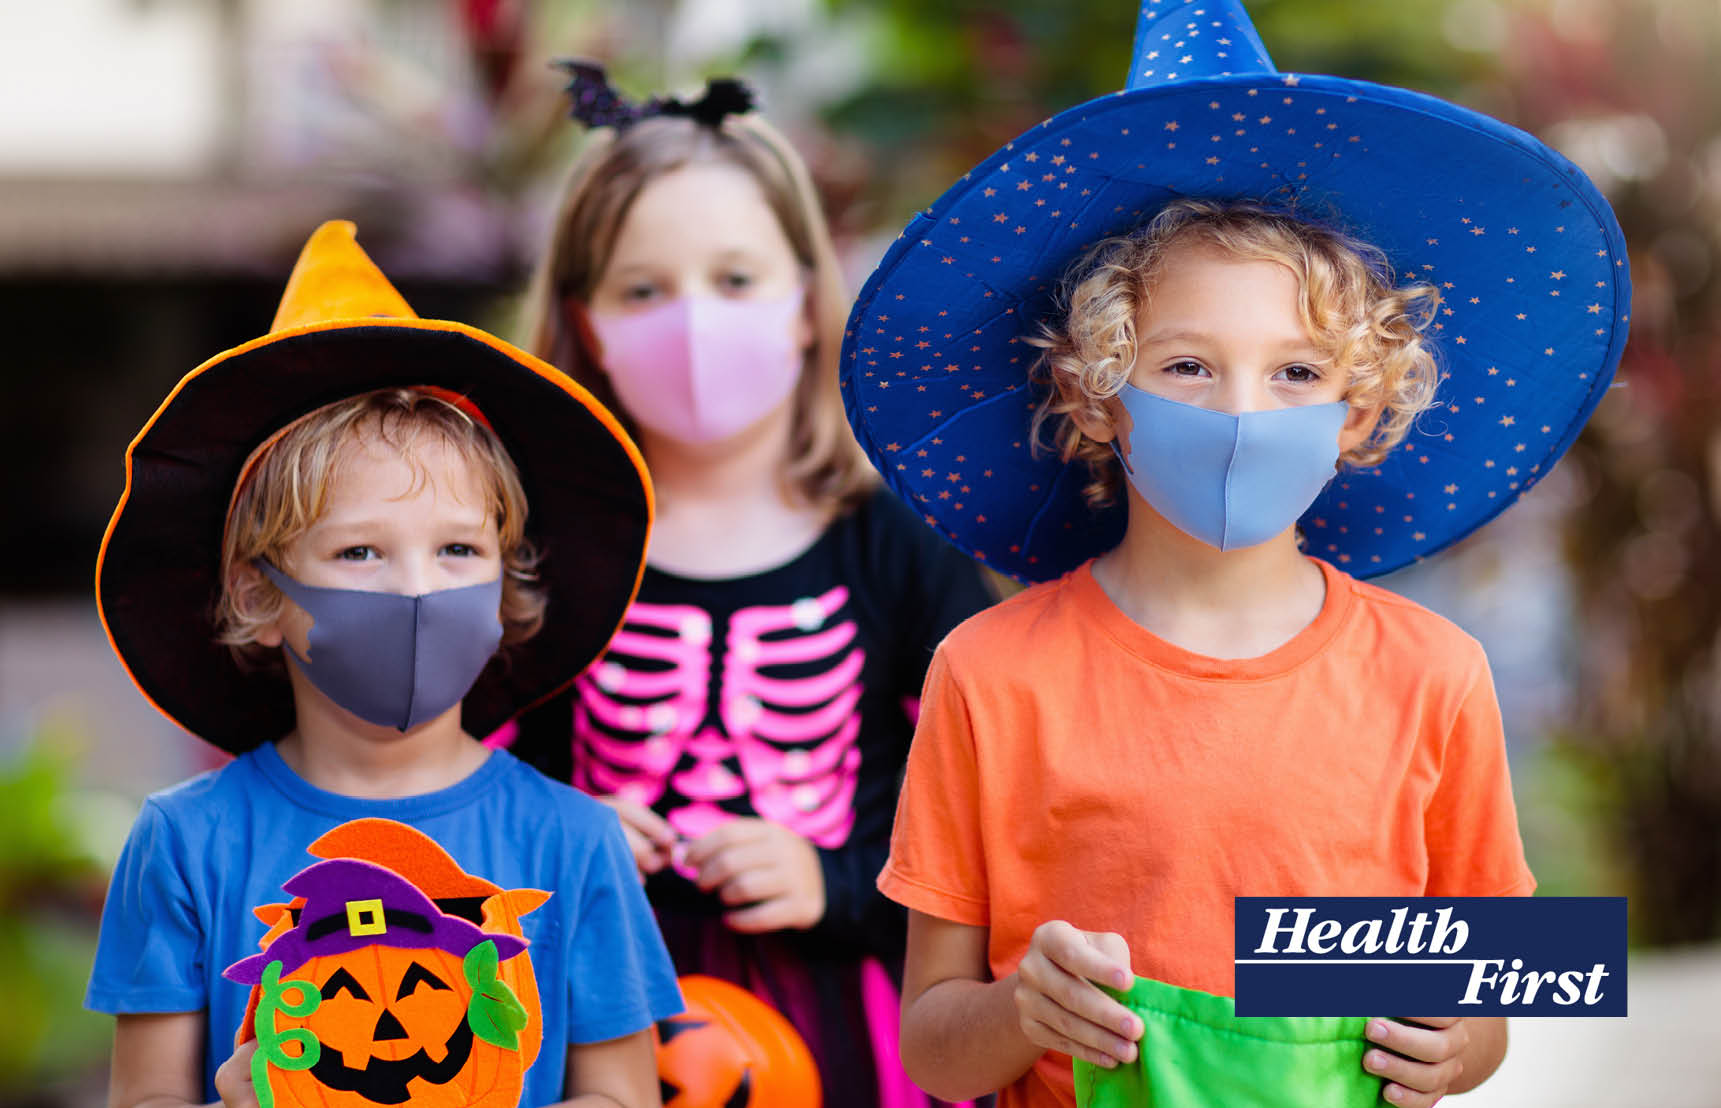 Children wearing halloween costumes and face masks